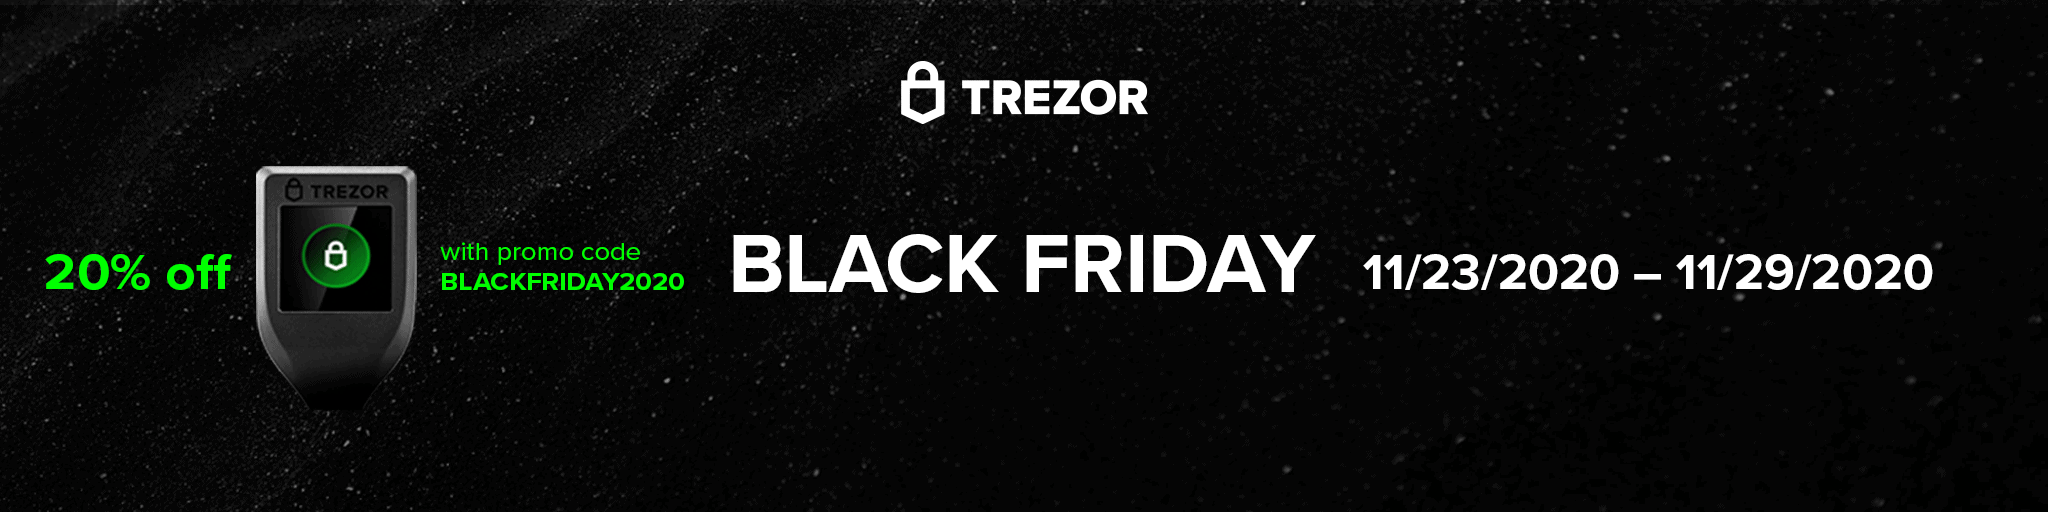 Trezor Black Friday Sale